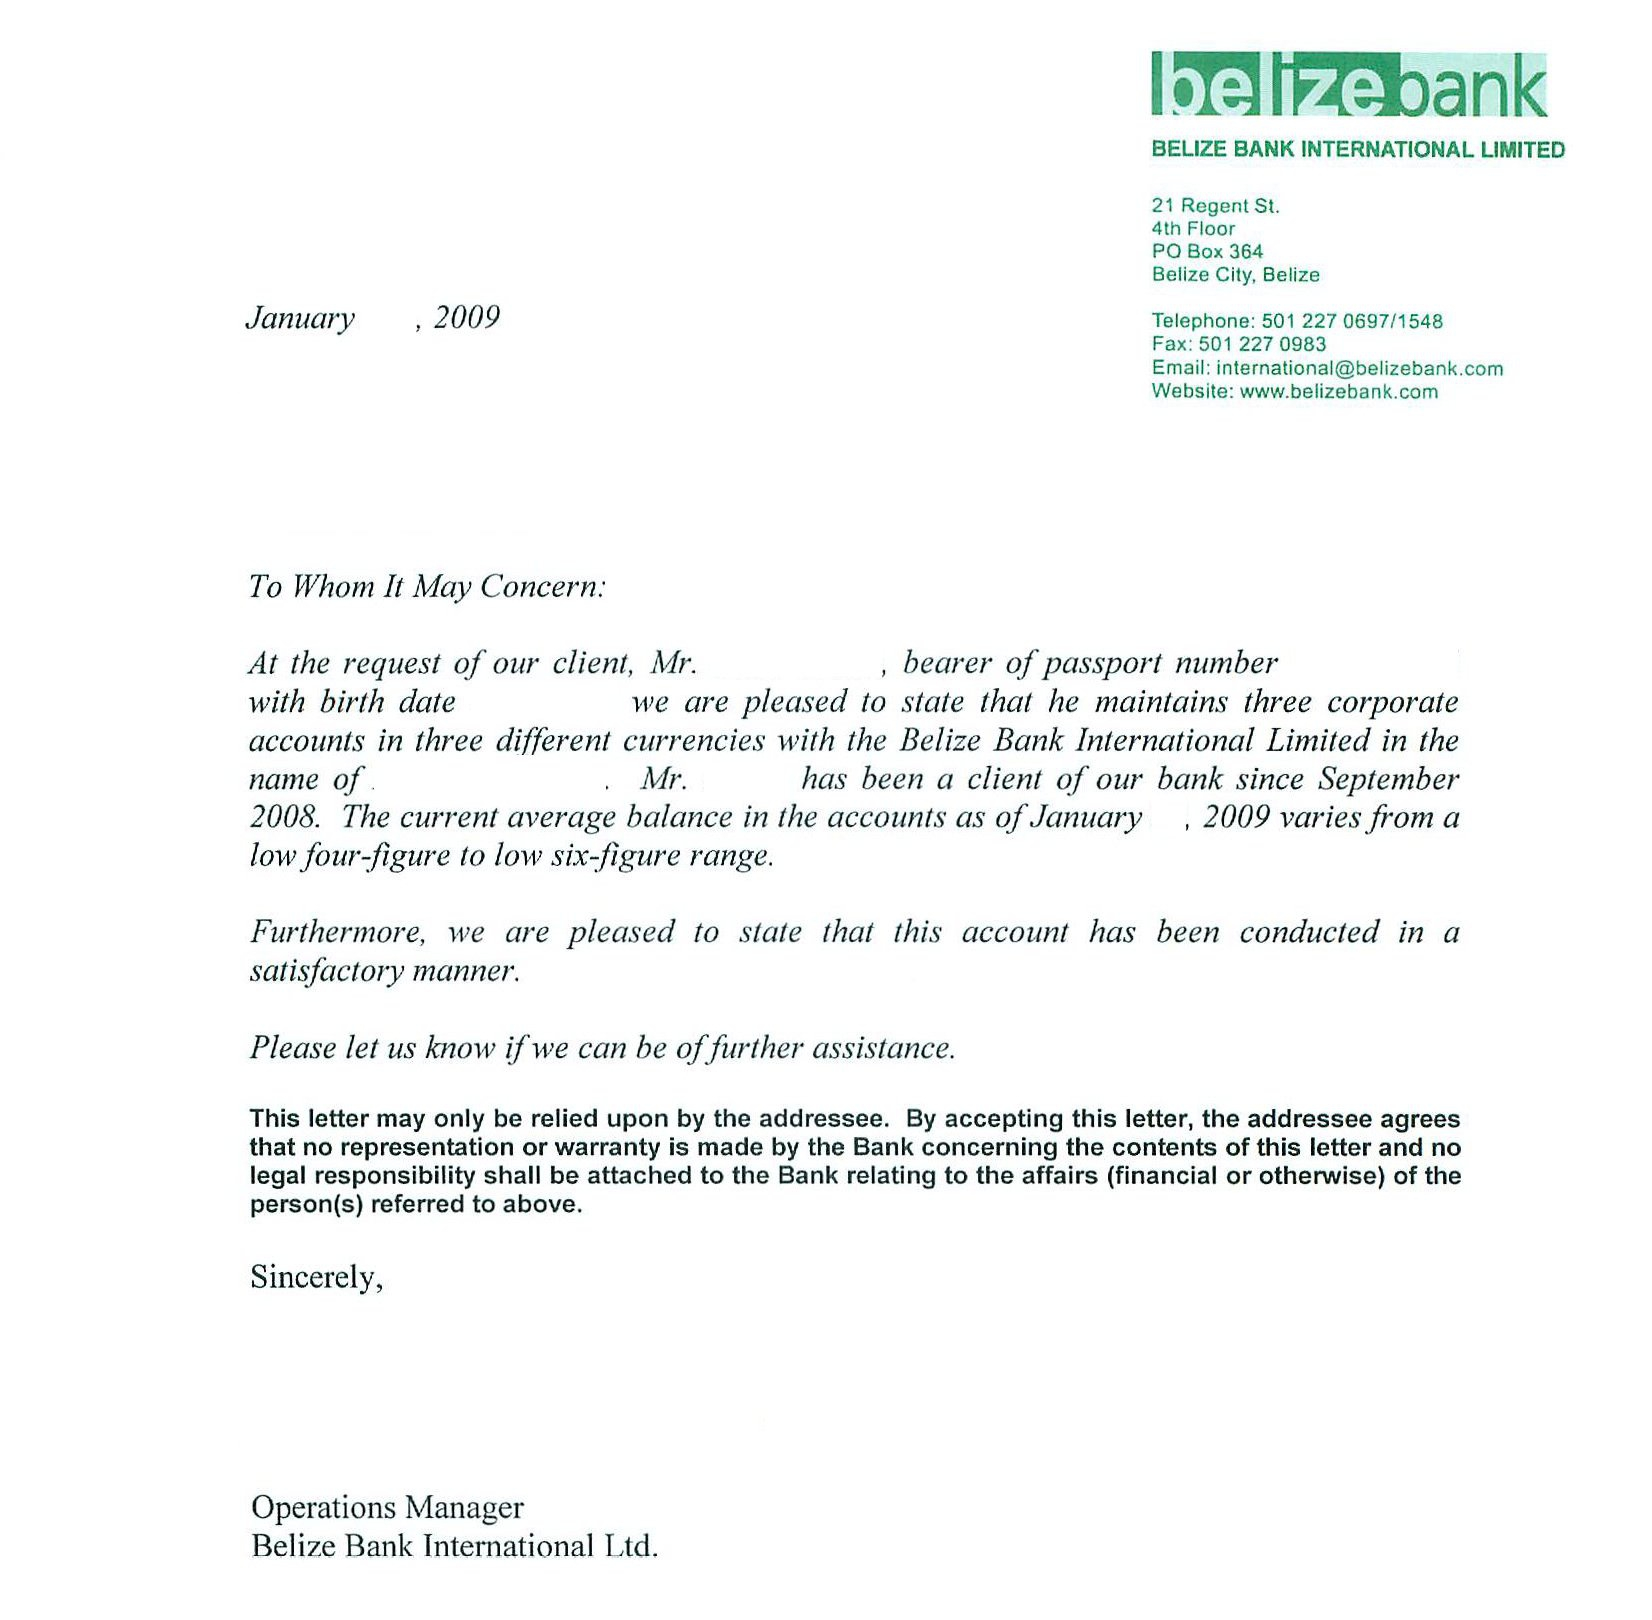 Personal Bank Reference Letter Sample by Belize Bank international limited